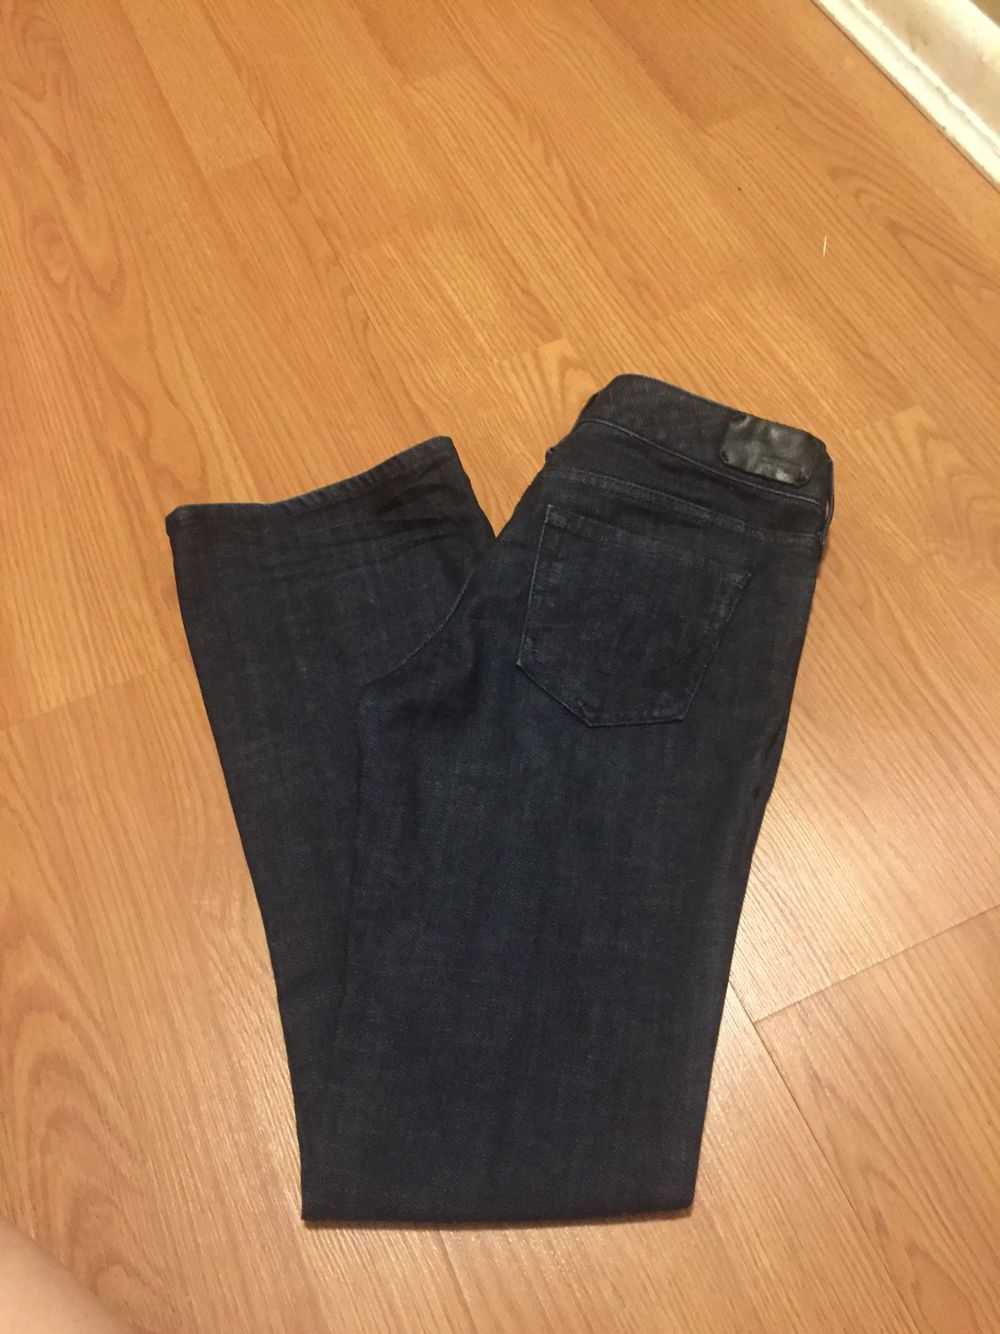 Express jeans size 2s $13